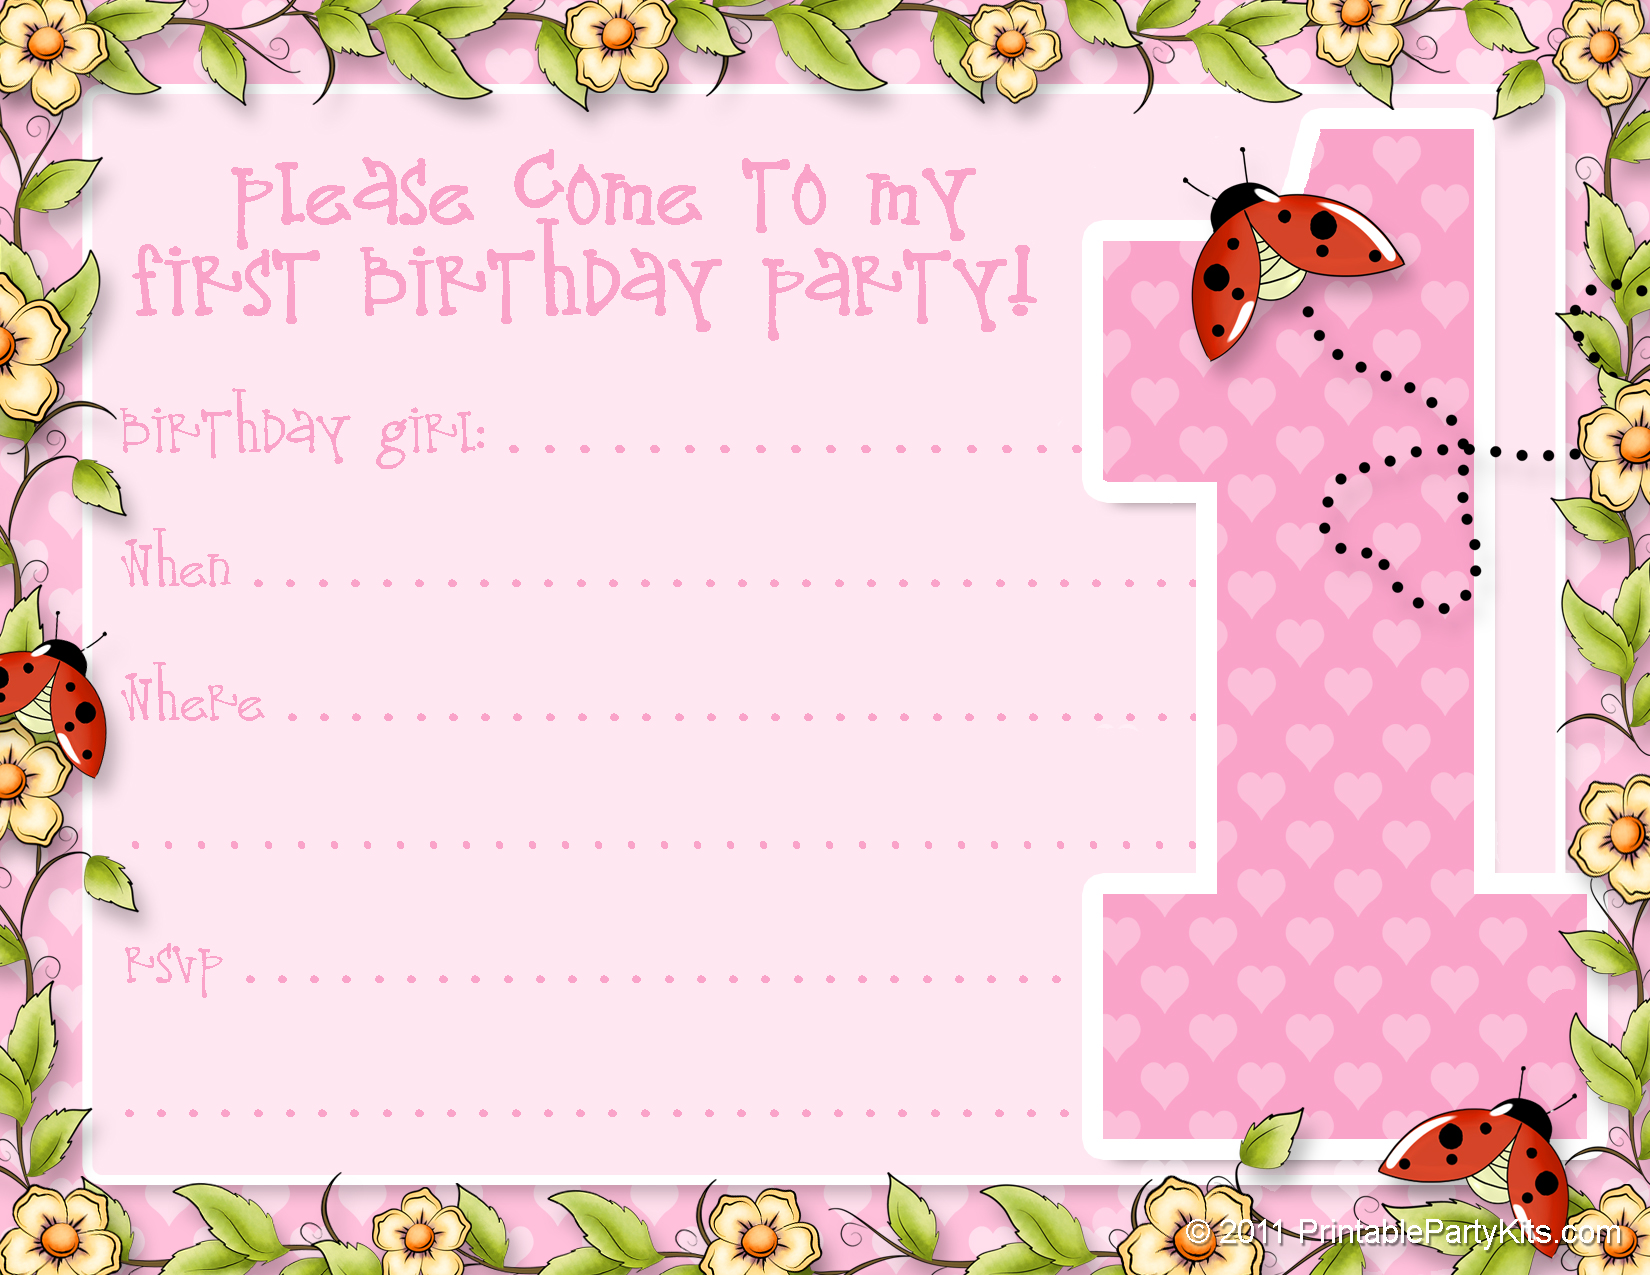 Th Birthday Ideas Free St Birthday Invitation Templates Printable - Free birthday invitation templates superhero